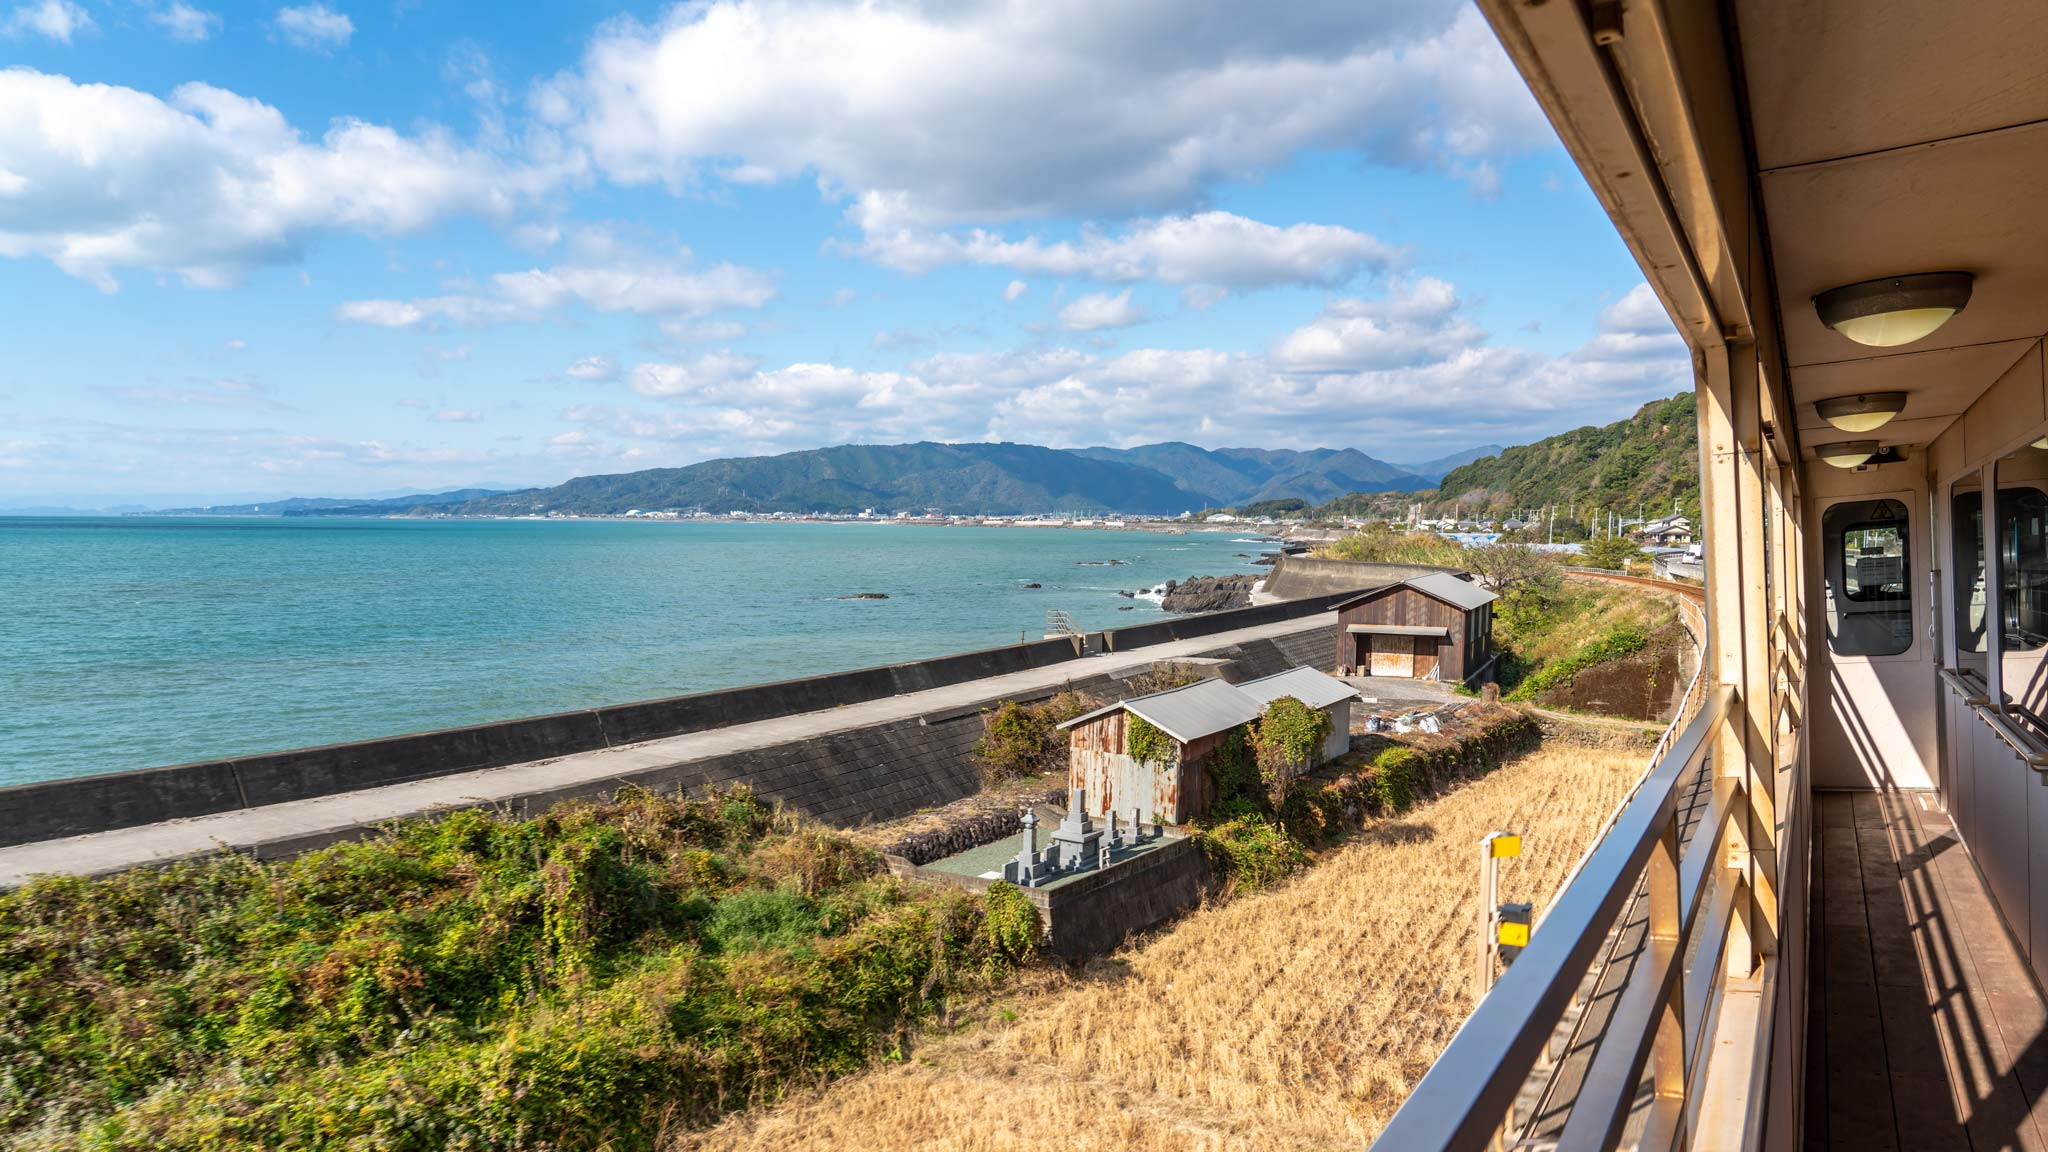 An open sided train in Kochi, Japan, looks out to the ocean